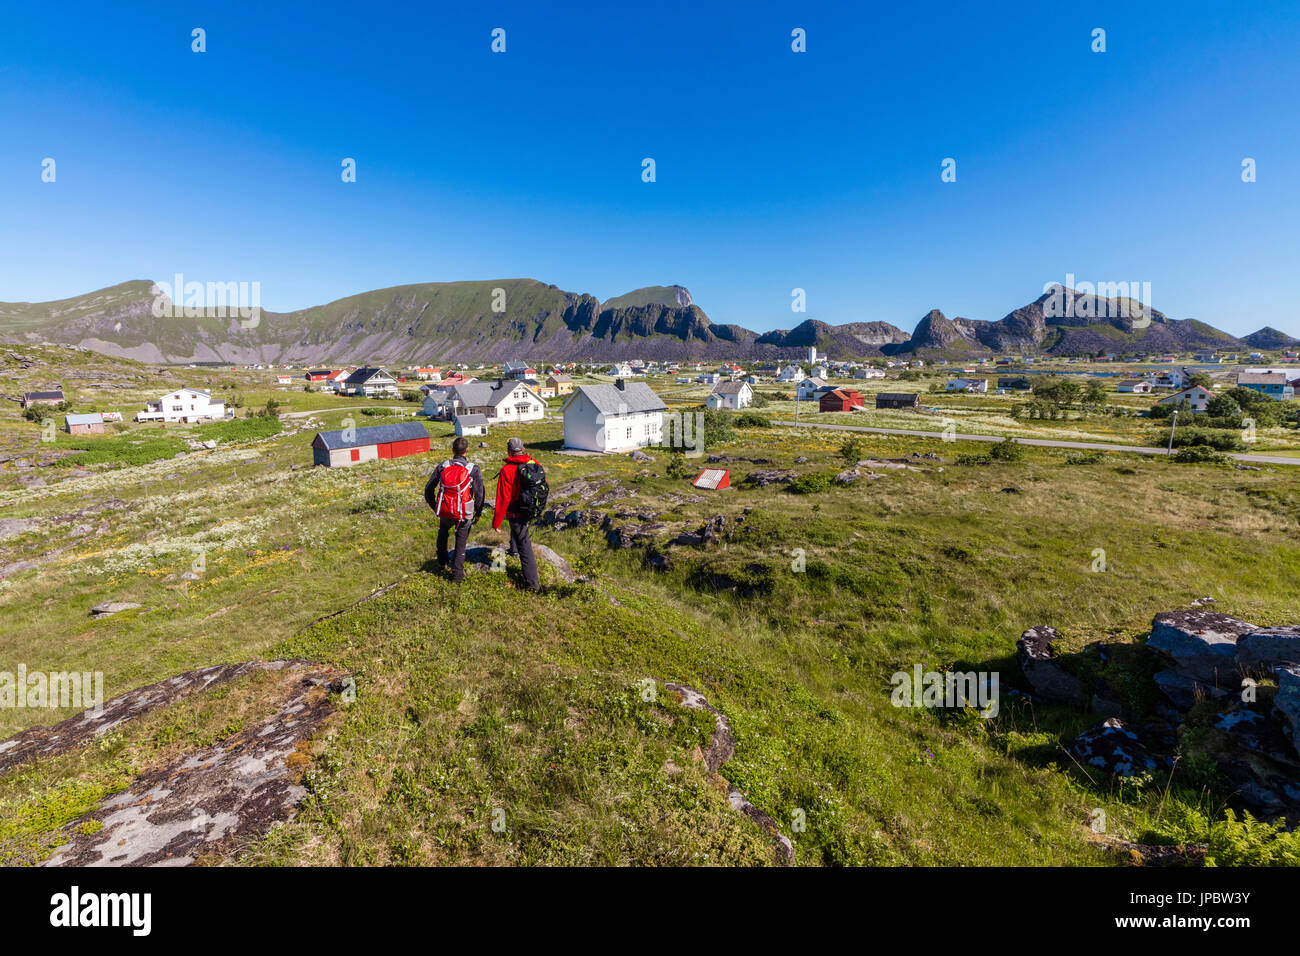 Hikers admire the village of Sorland surrounded by green meadows Vaeroy Island Nordland county Lofoten archipelago Norway Europe - Stock Image